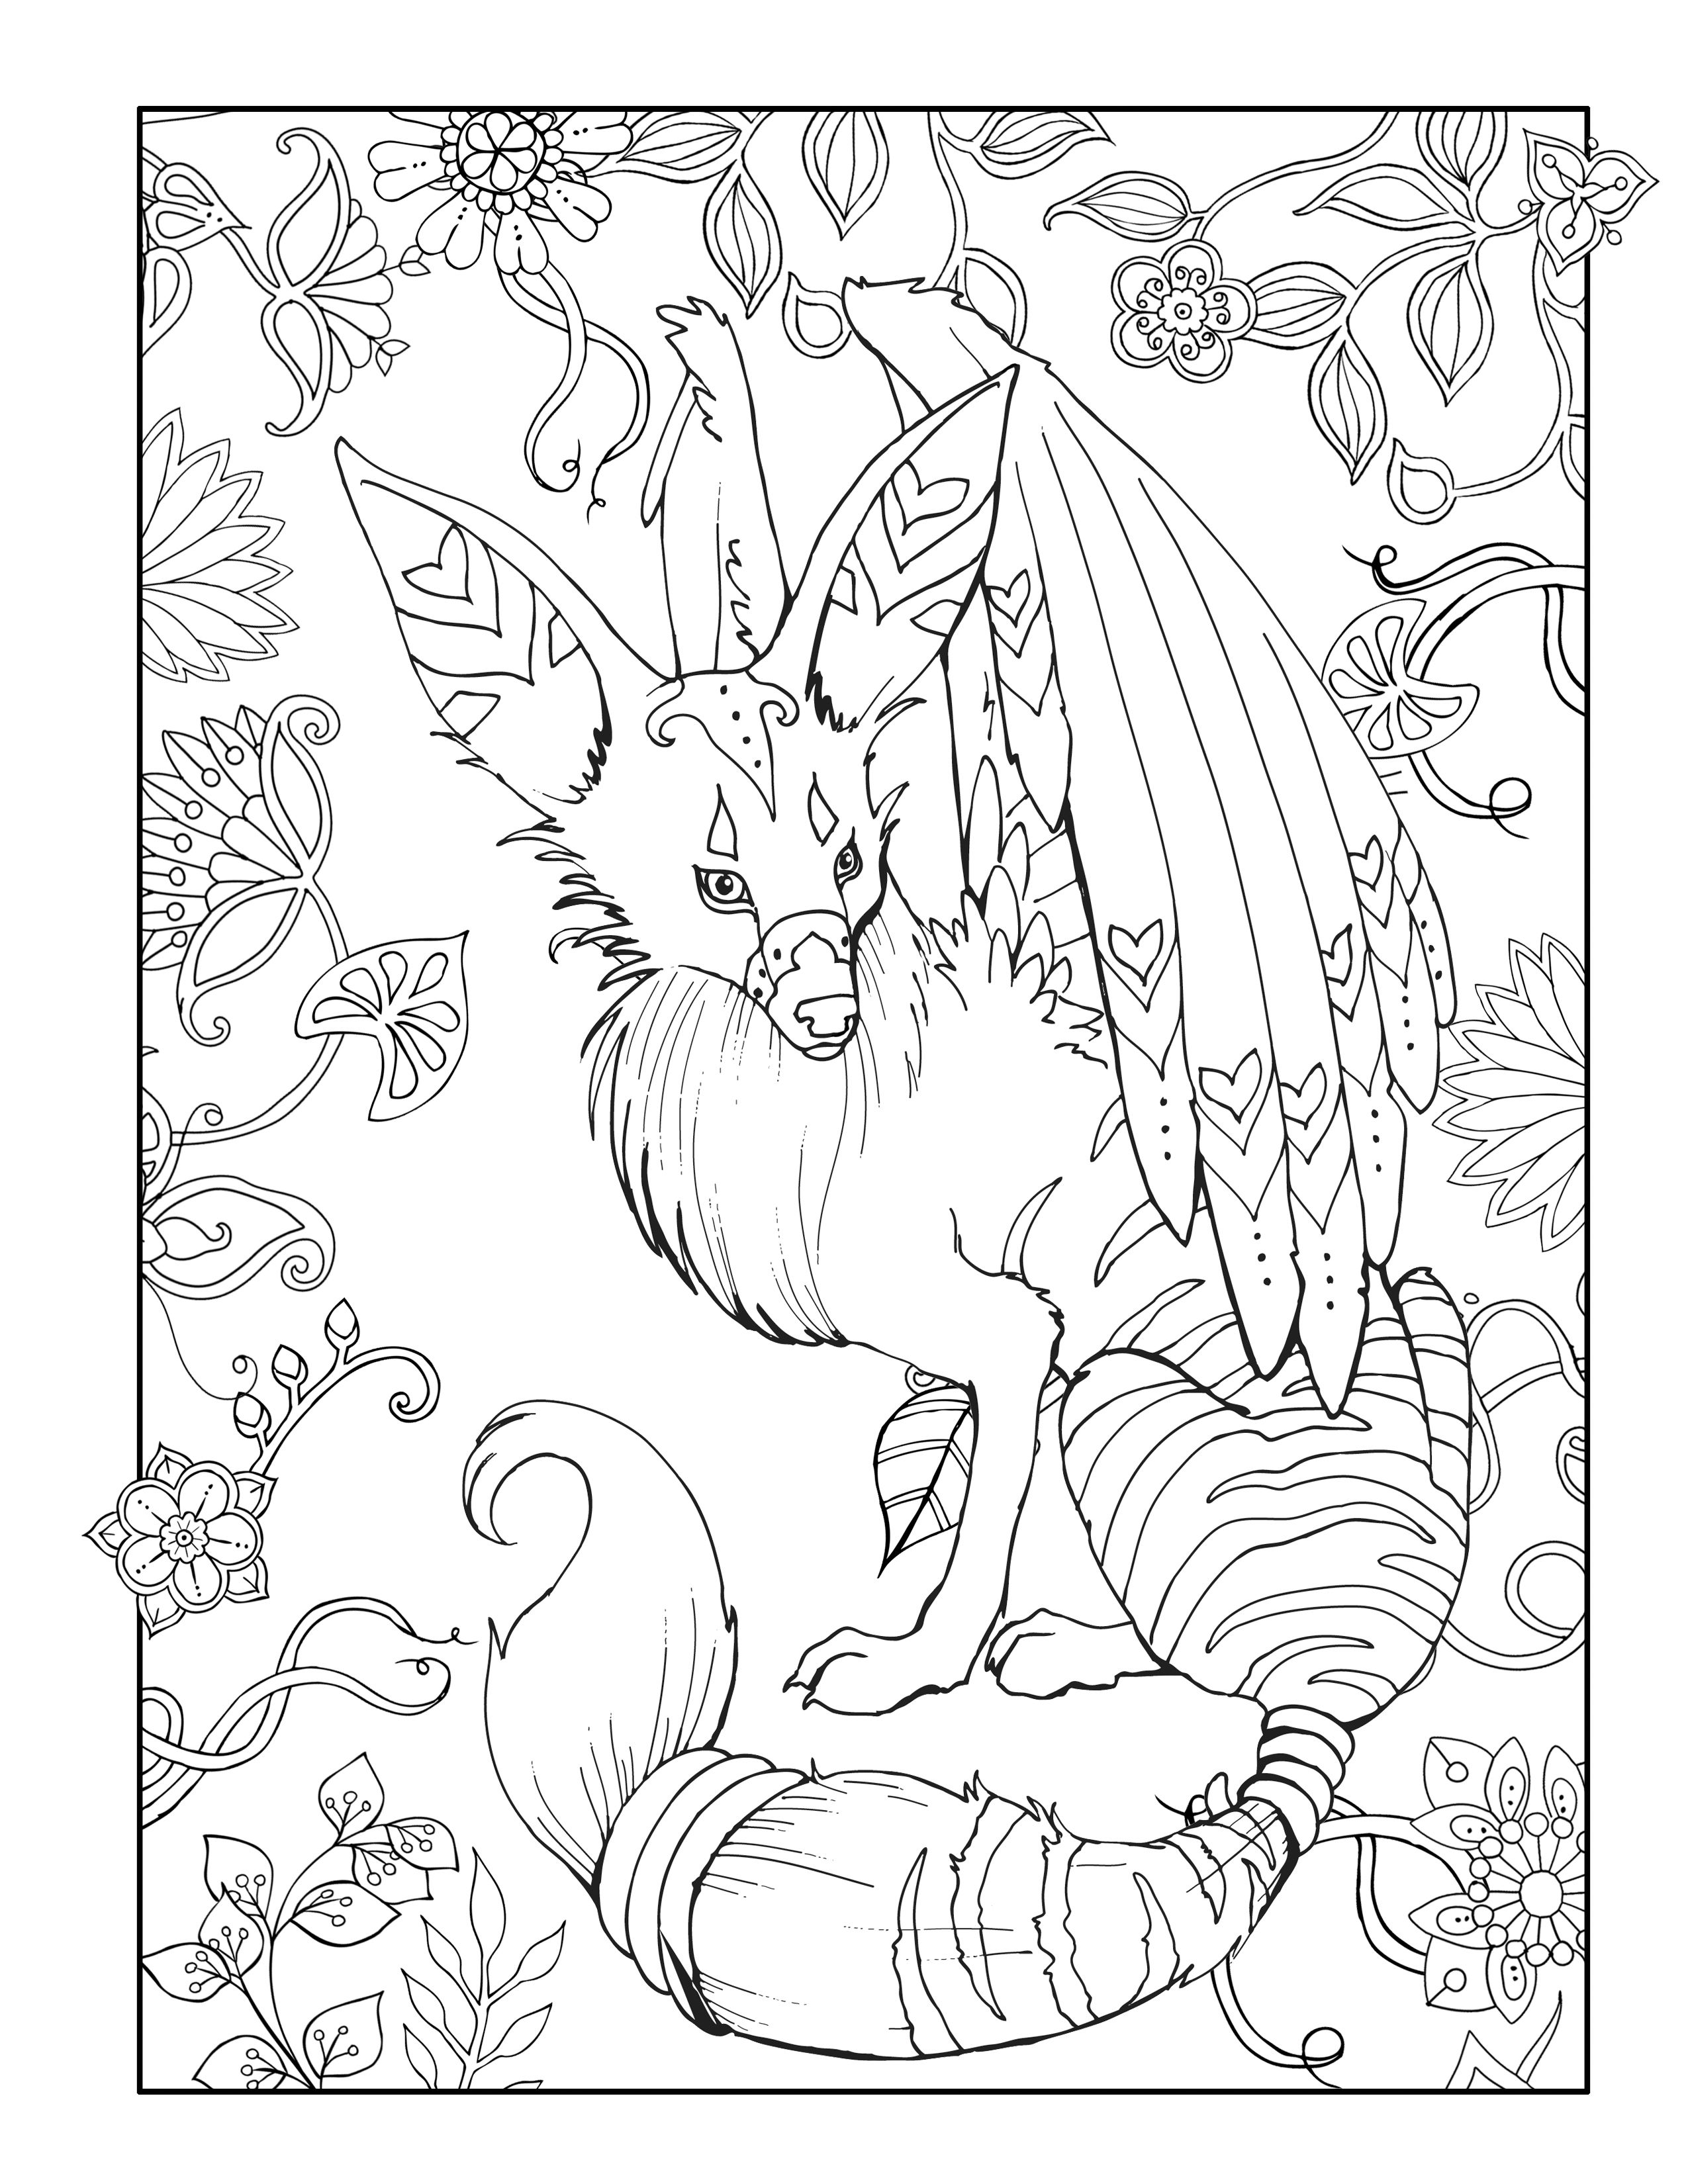 Pin on Adult Coloring Book Pages and Doodles